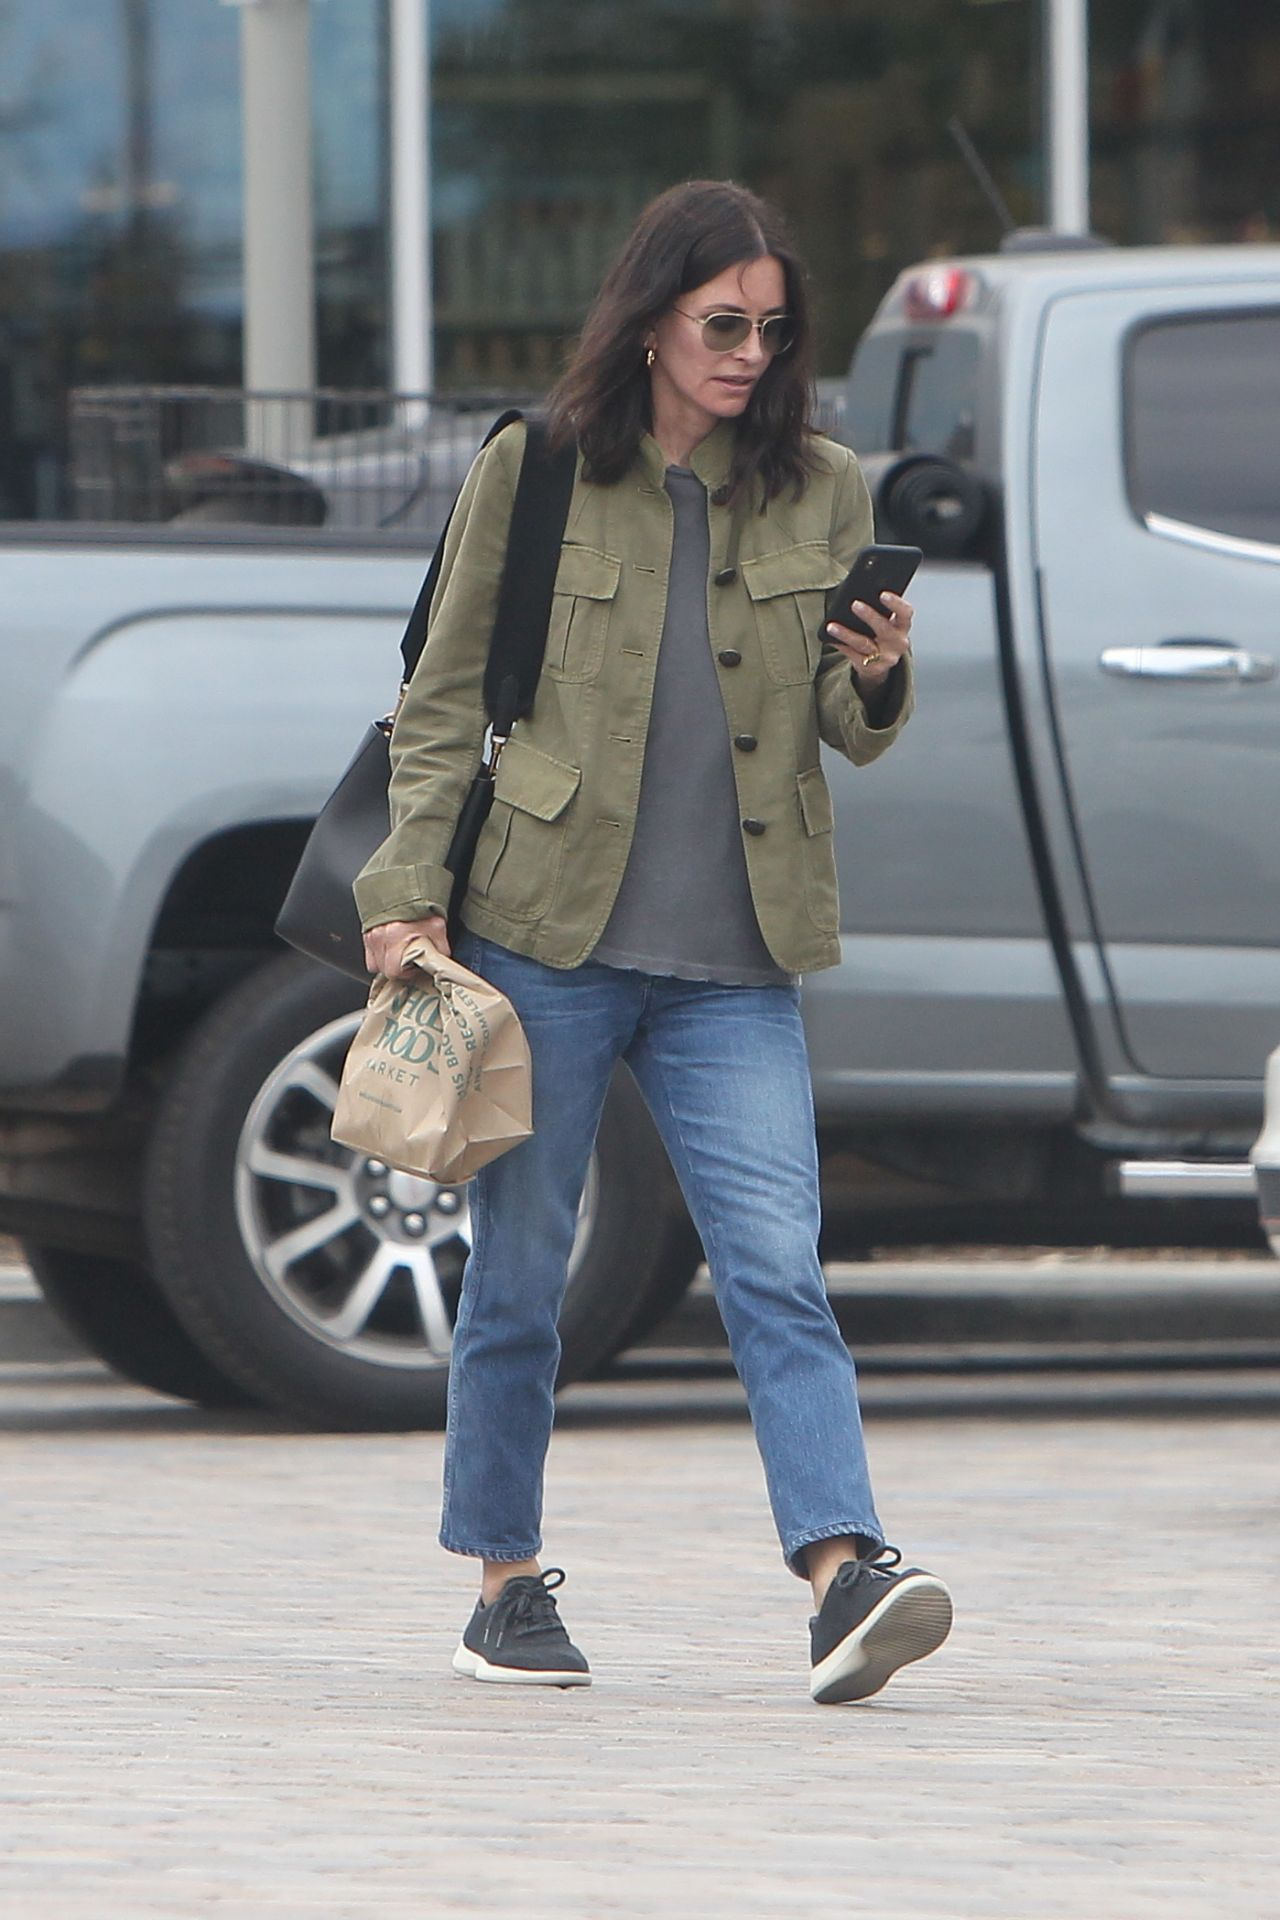 Courtney Cox Shopping At Whole Foods In La 06 22 2019